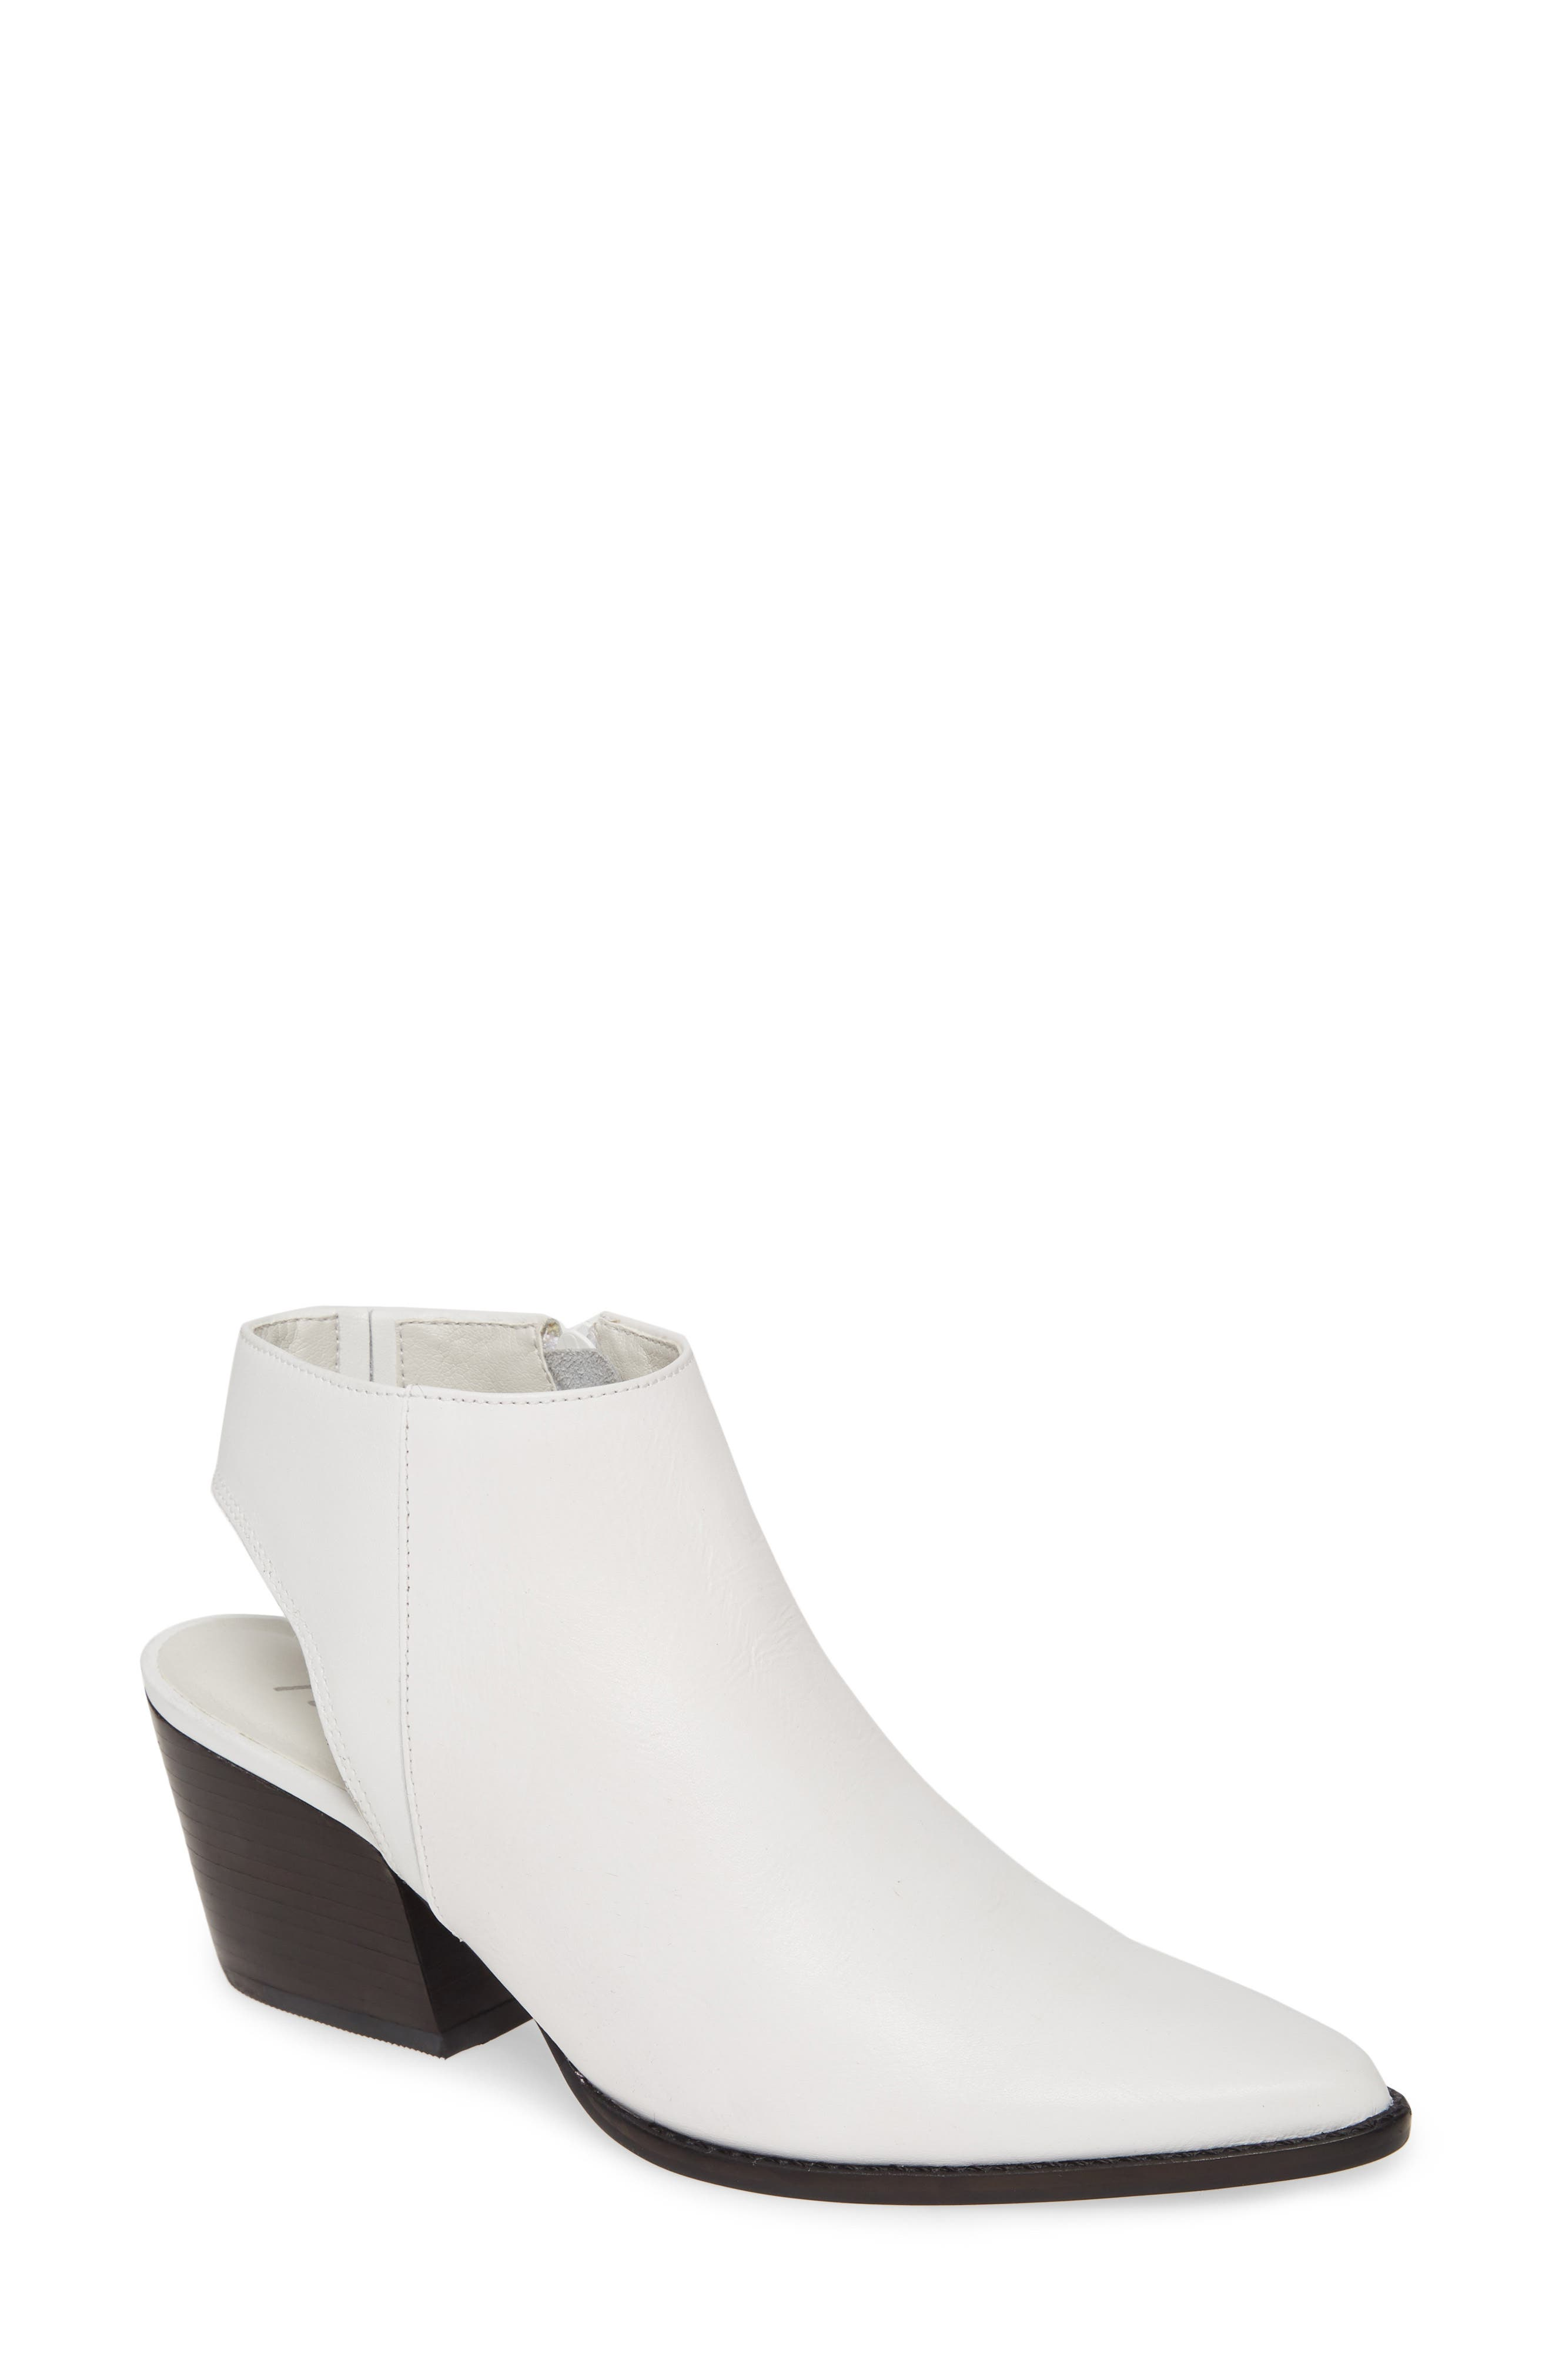 Matisse Odie Cutout Pointed Toe Boot, White